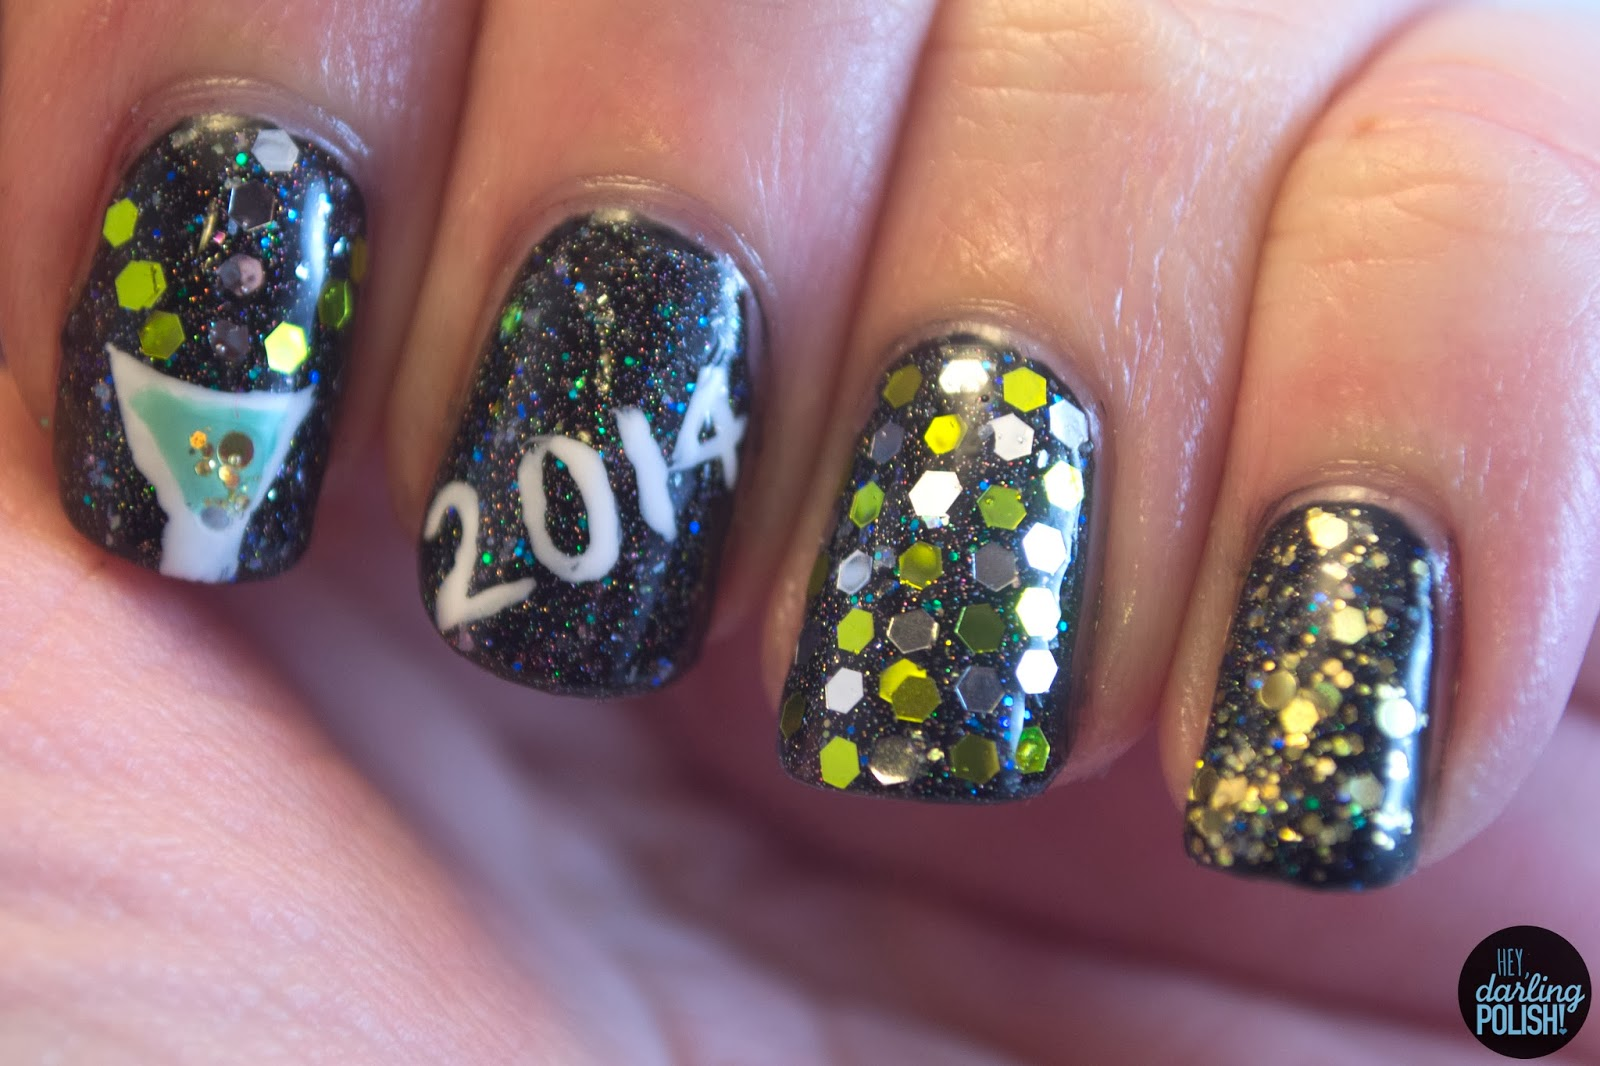 Hey, Darling Polish!: Happy New Year\'s Eve!